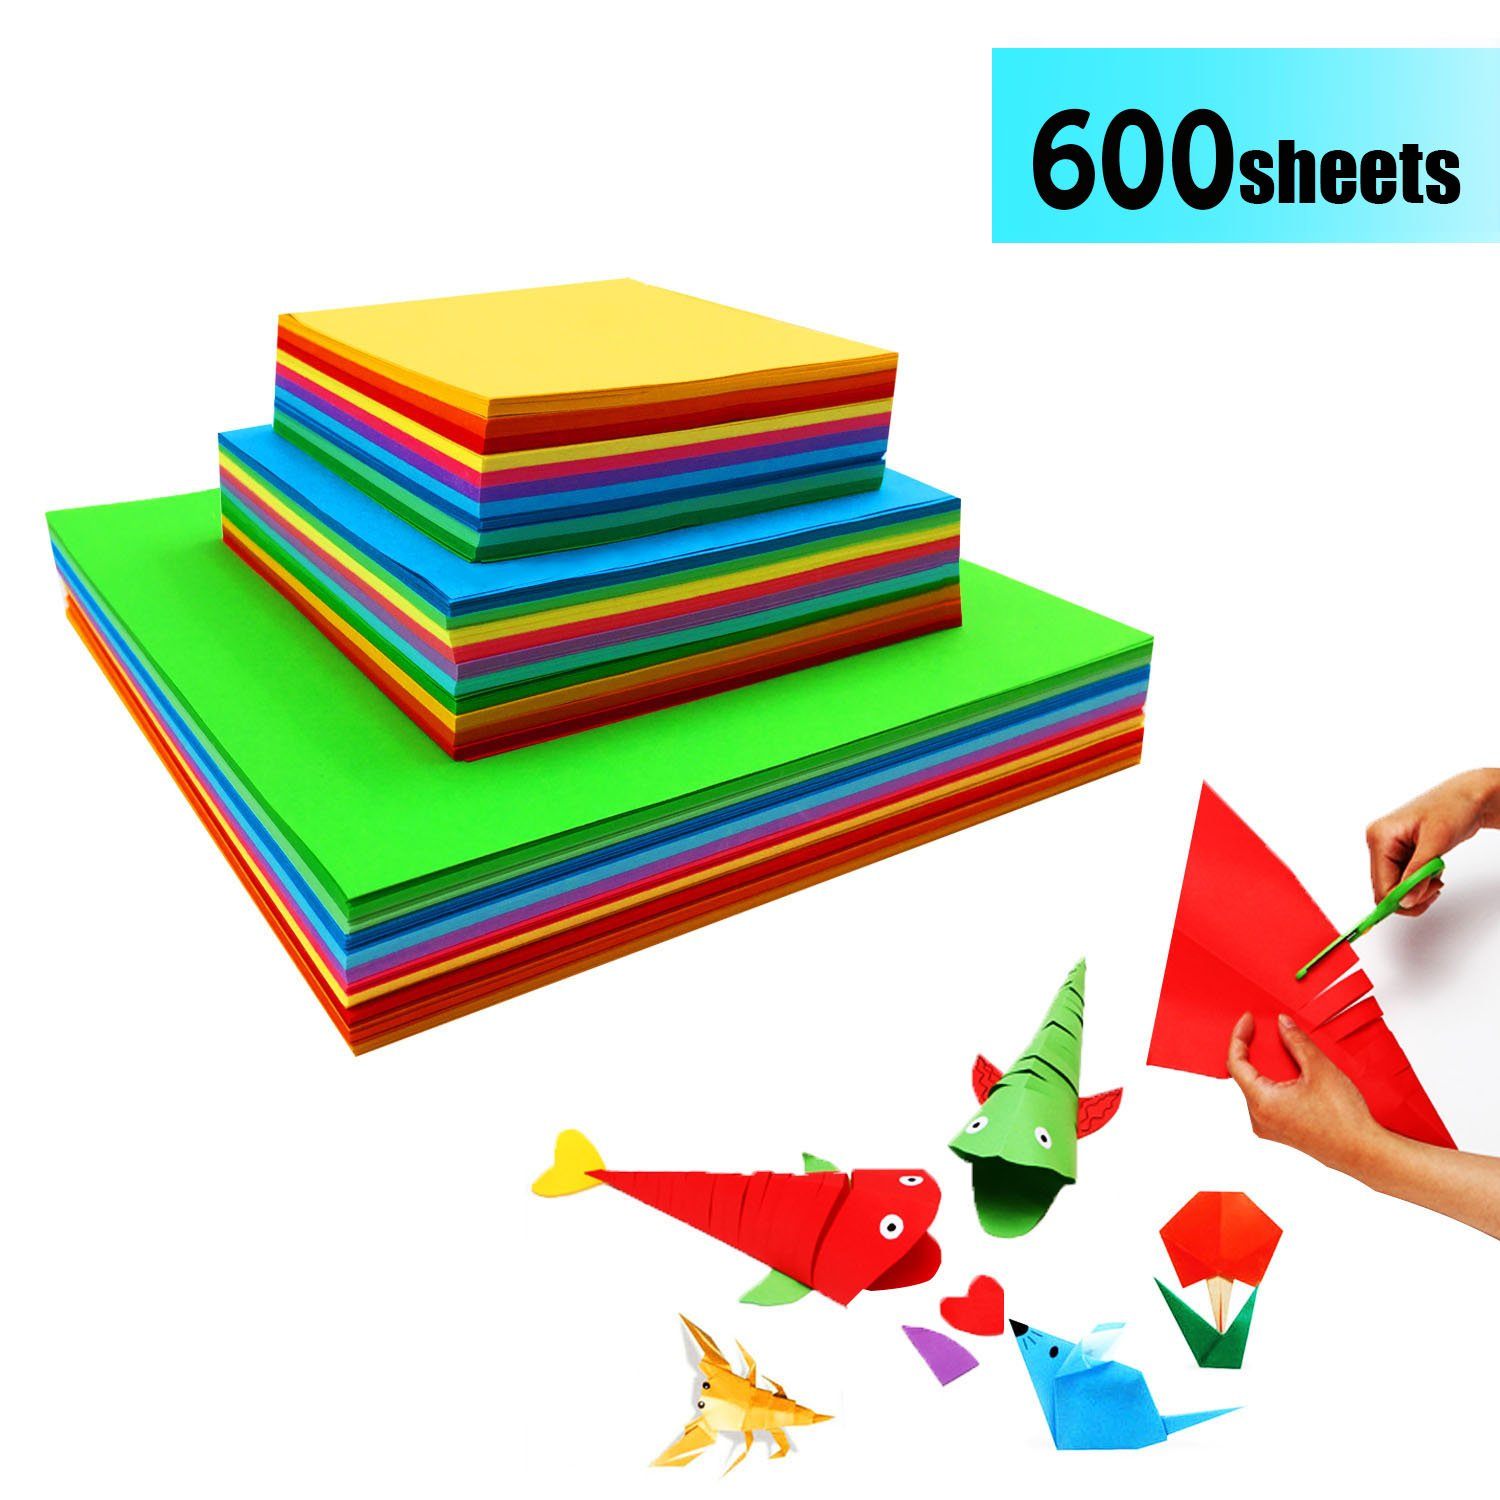 Coloured Origami Paper - 600 Sheets Square Coloured Papers Double Sided Craft Art Paper for DIY Handcrafts JXFF Ltd.